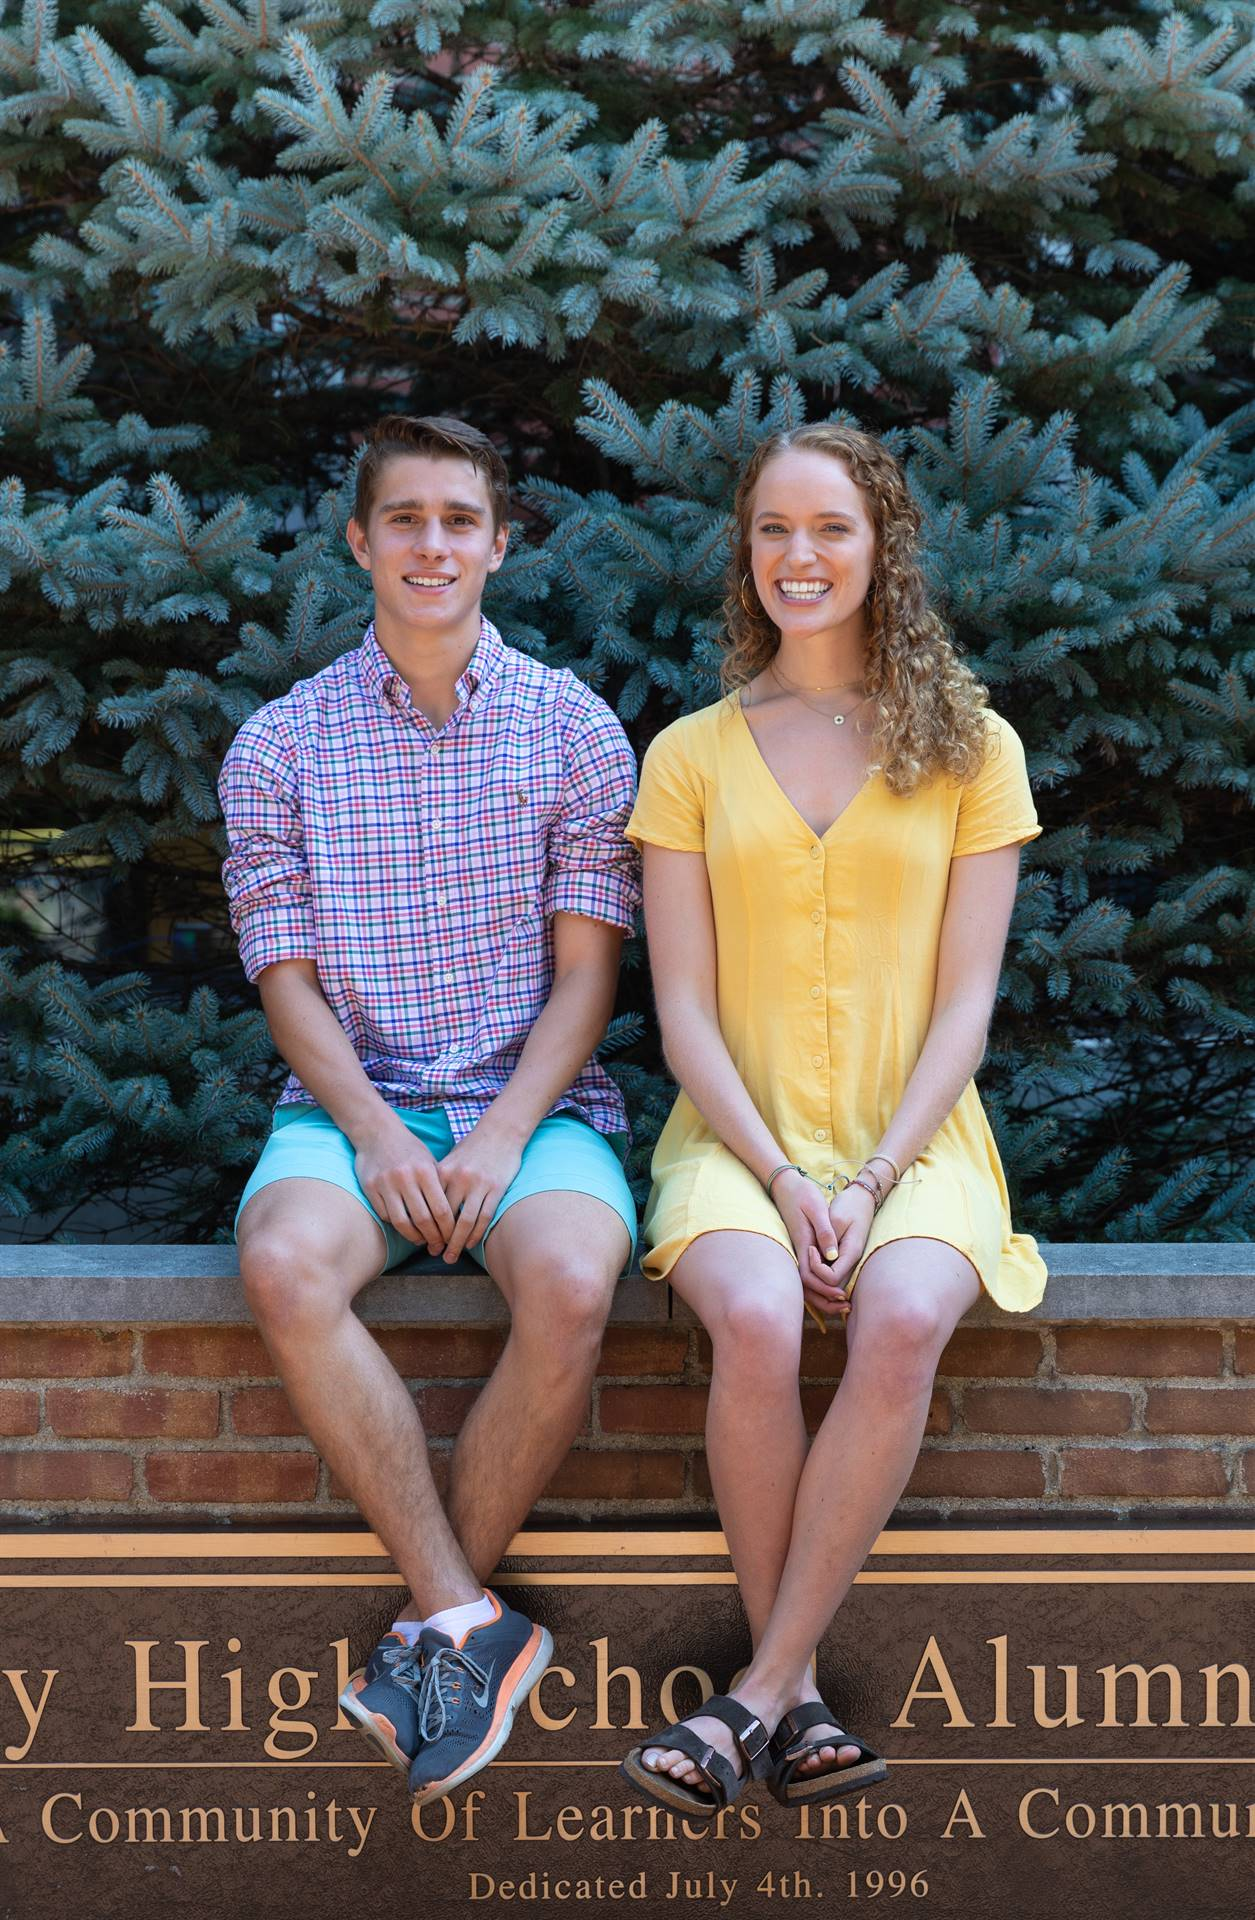 Congratulations to Anna Politi and Grant Halliday, who were named Semifinalists in the National Meri